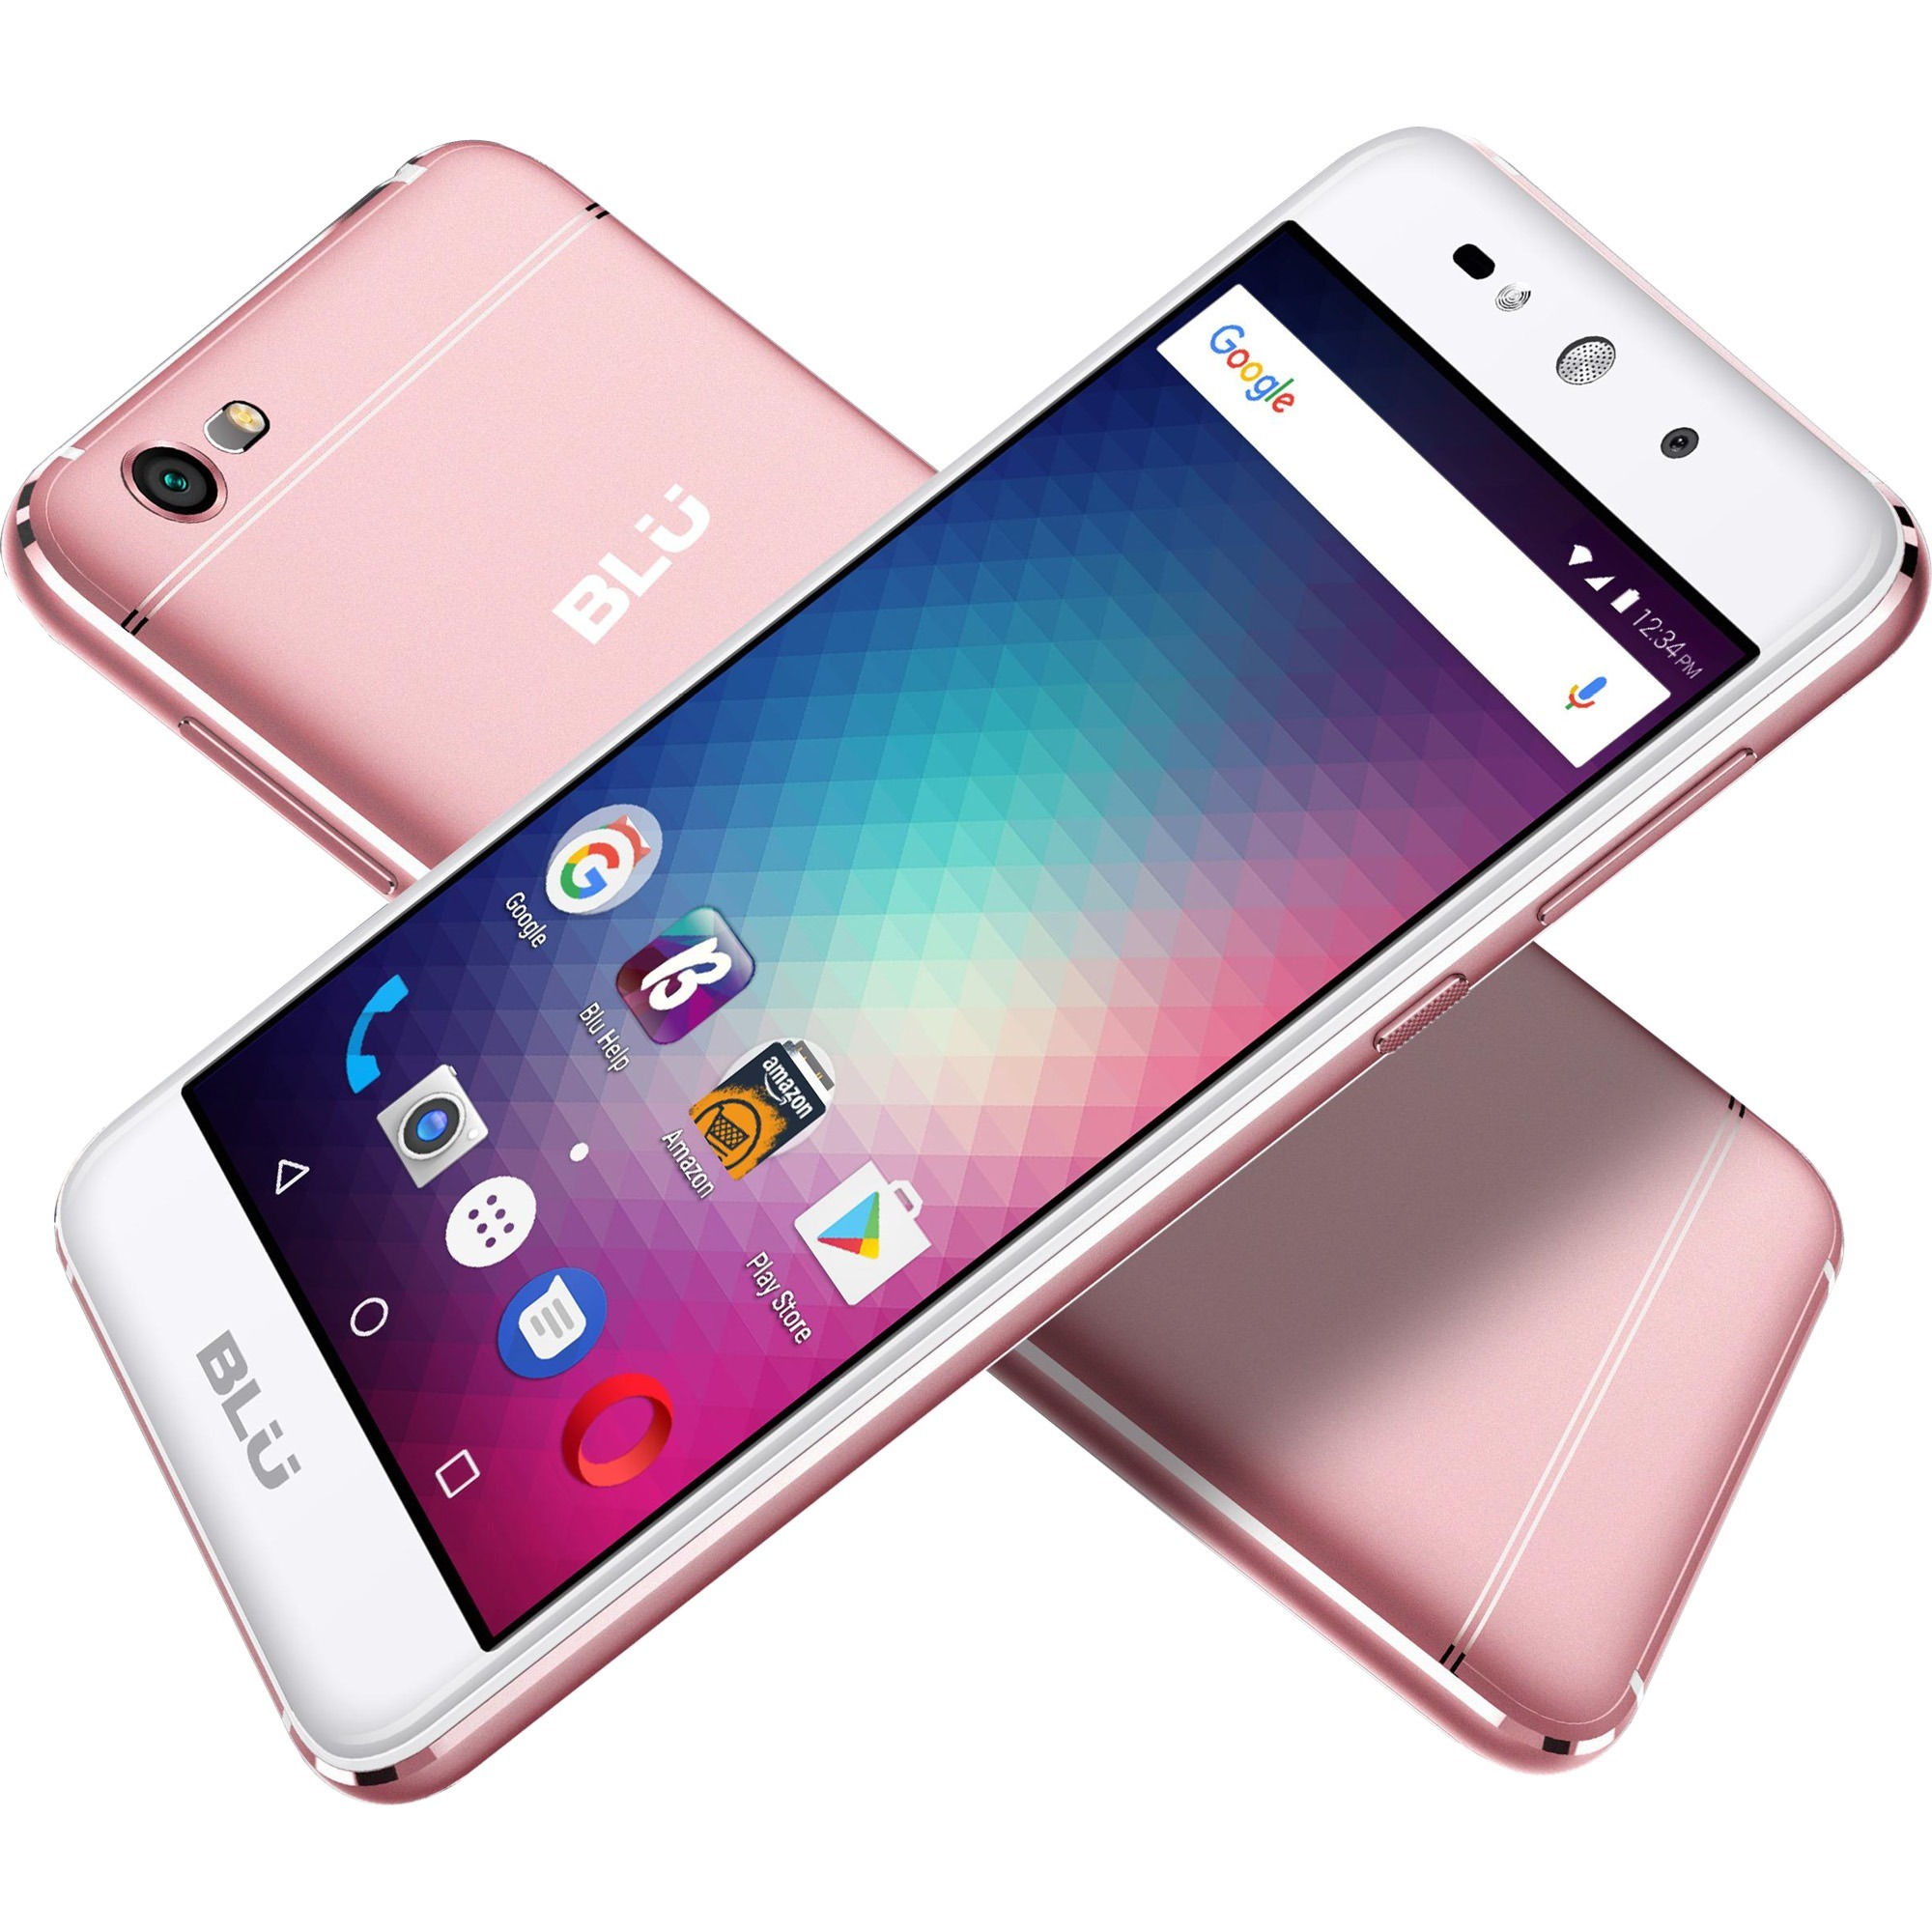 "BLU GRAND MAX G110Q 8 GB Smartphone - 5"" HD - 1 GB RAM - Android 6.0 Marshmallow - 3G - Rose Gold - Bar MT6580 Quad-core (4 Core) 1.30 GHz - 2 SIM Support - 64 GB microSD Support SIM-free - 8 Megapixel Rear Camera - 1 Day Talk Time - 700 Hour Standby Time"